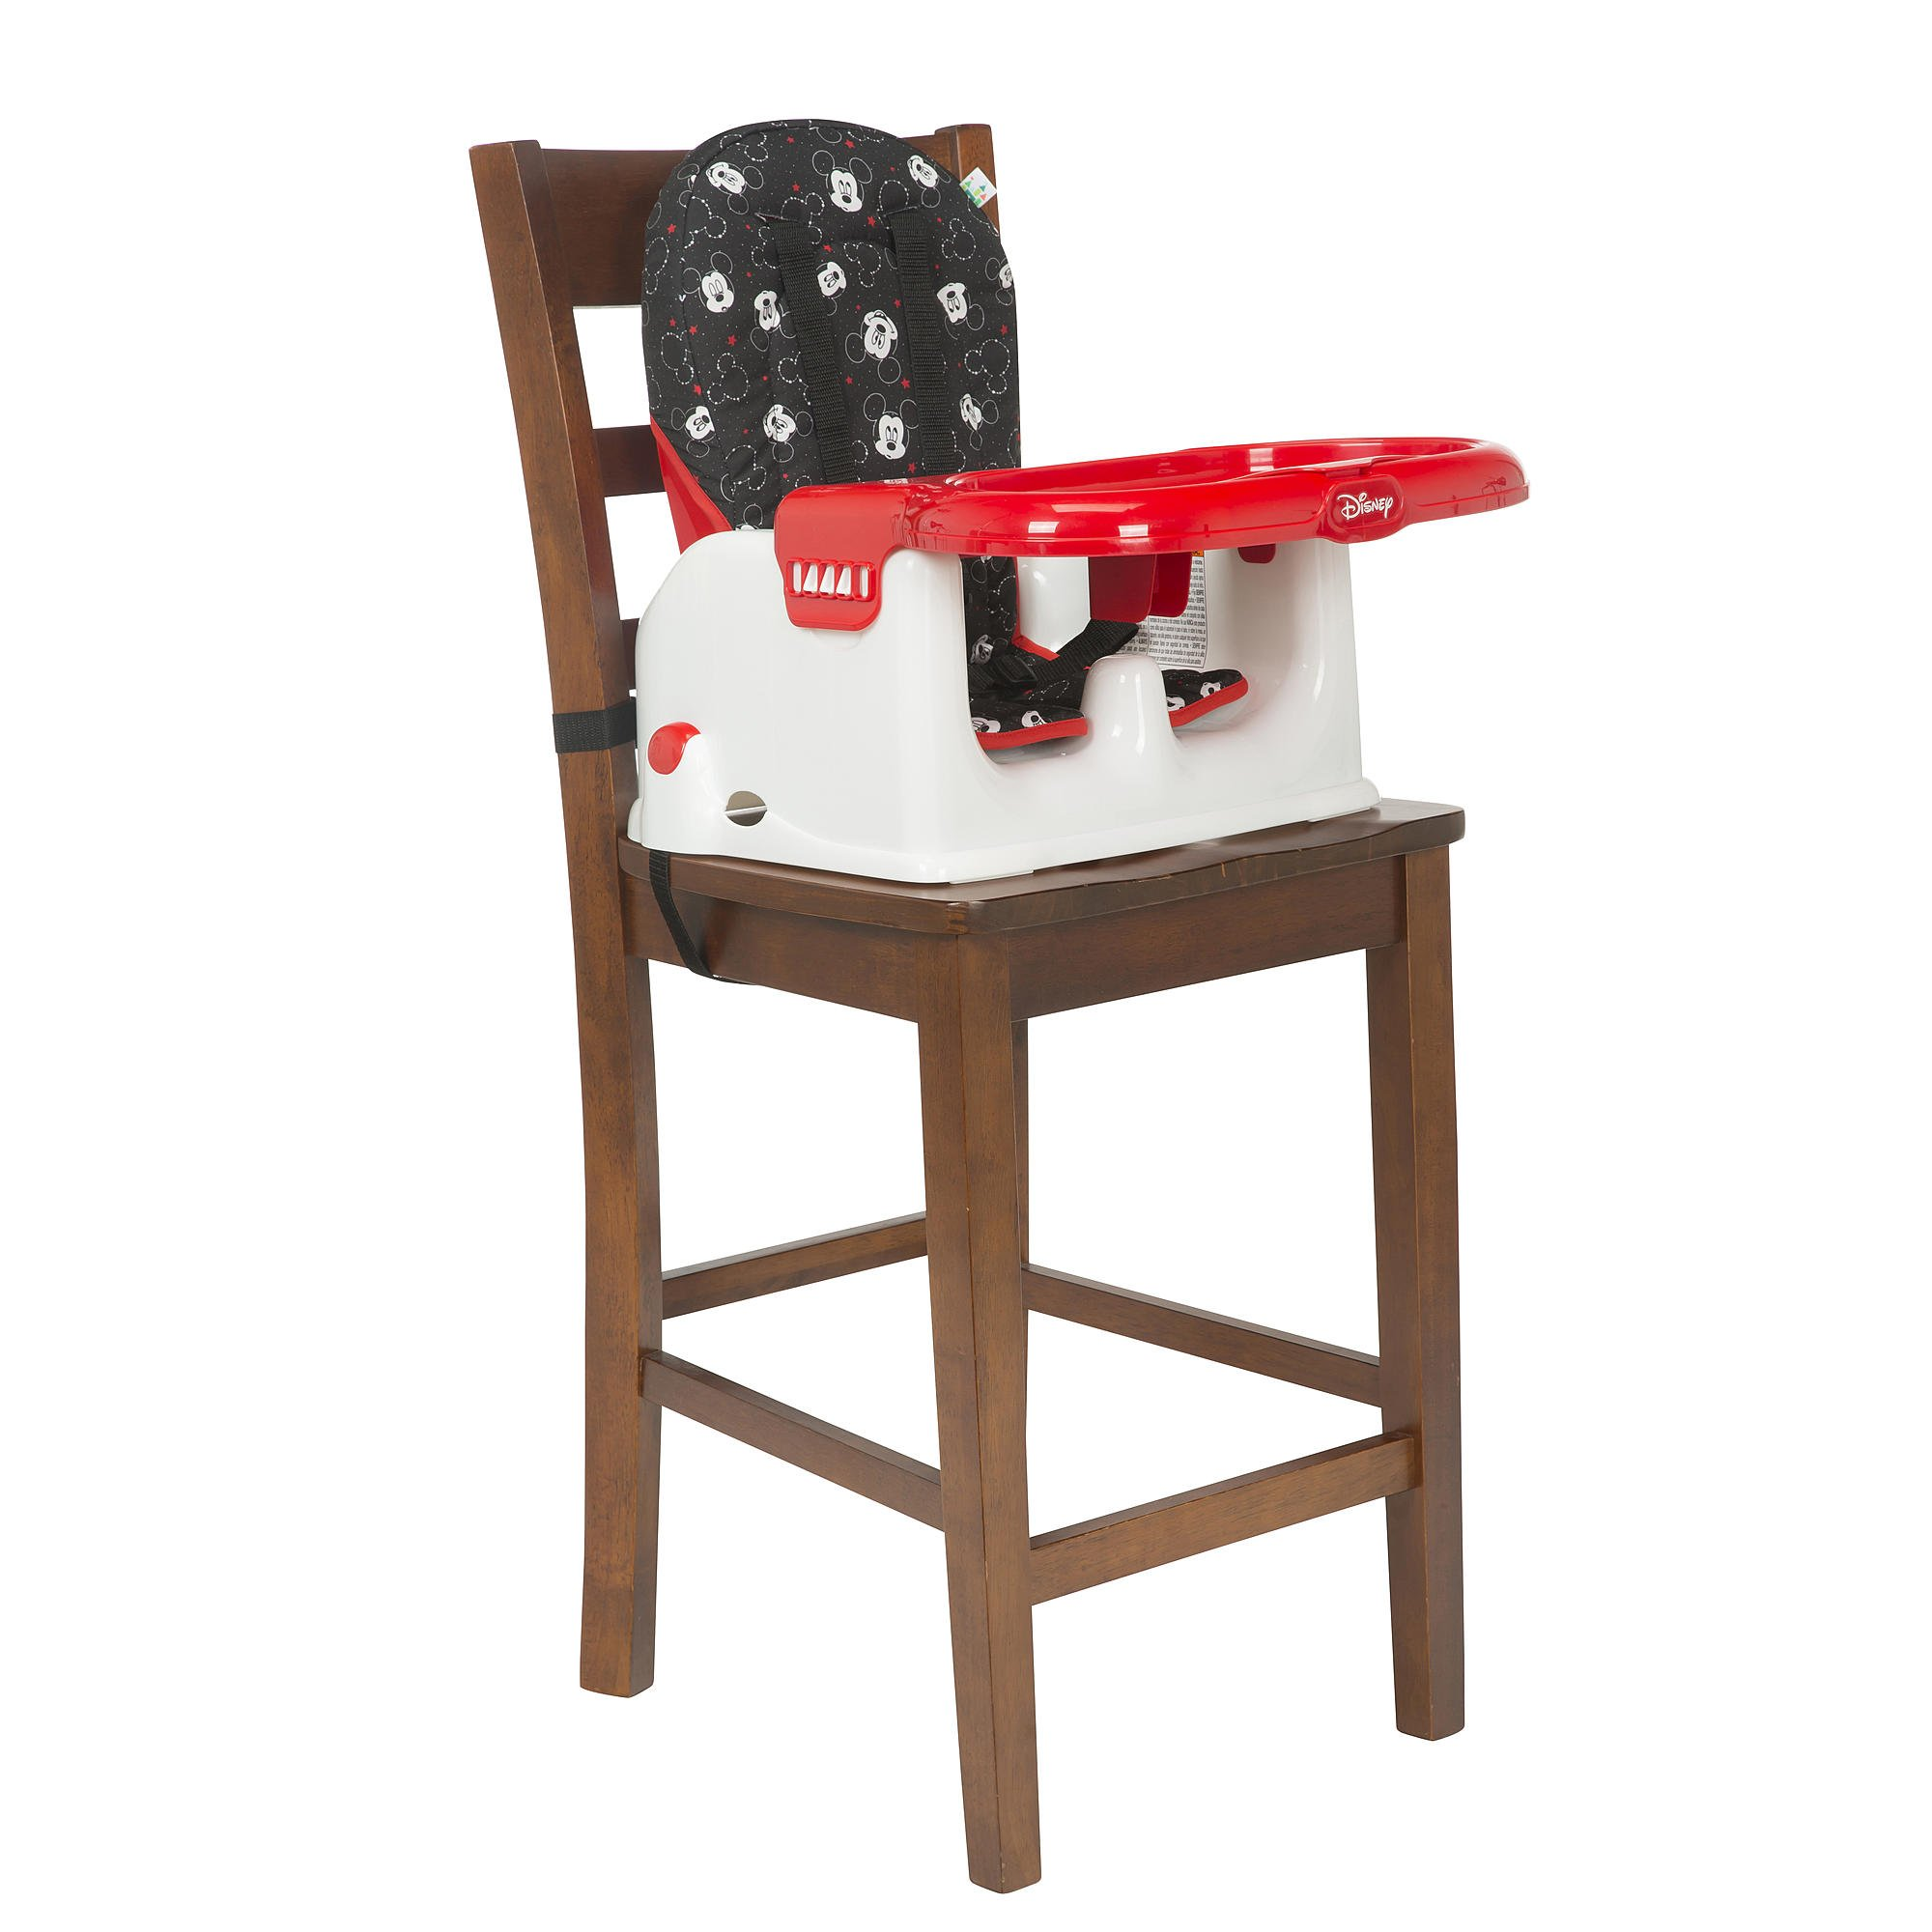 Mickey Mouse 4-in-1 High Chair from Disney